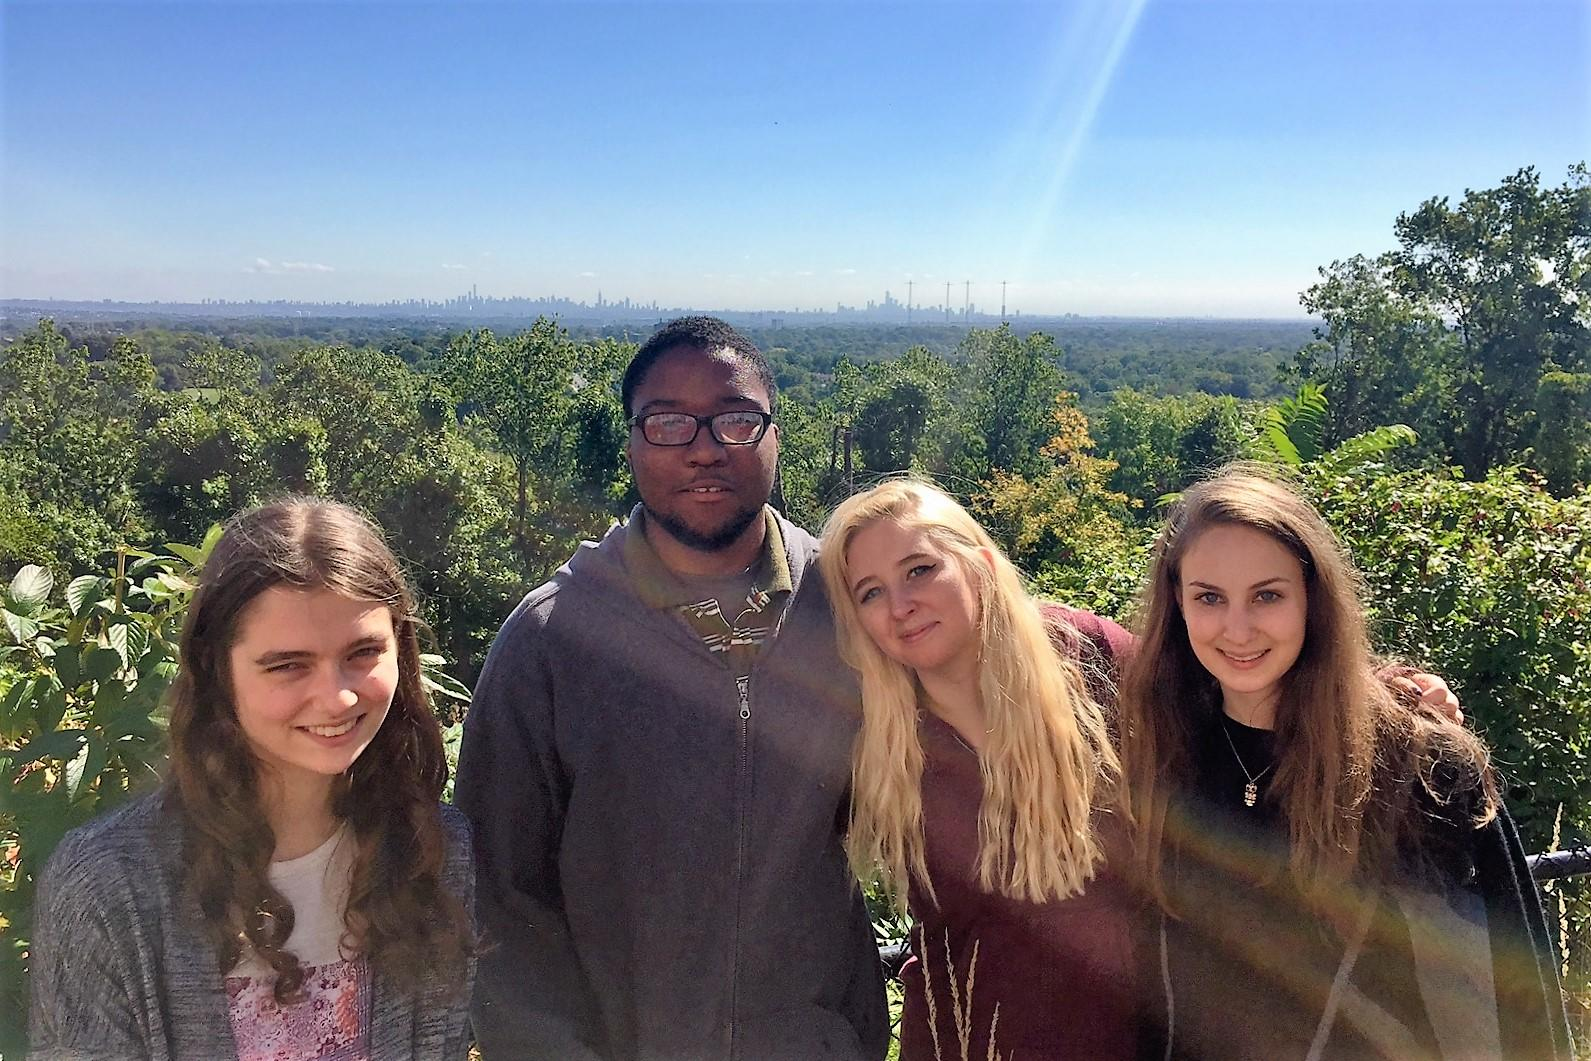 Four students on a field trip. They are on a hill with many acres of green trees behind them.